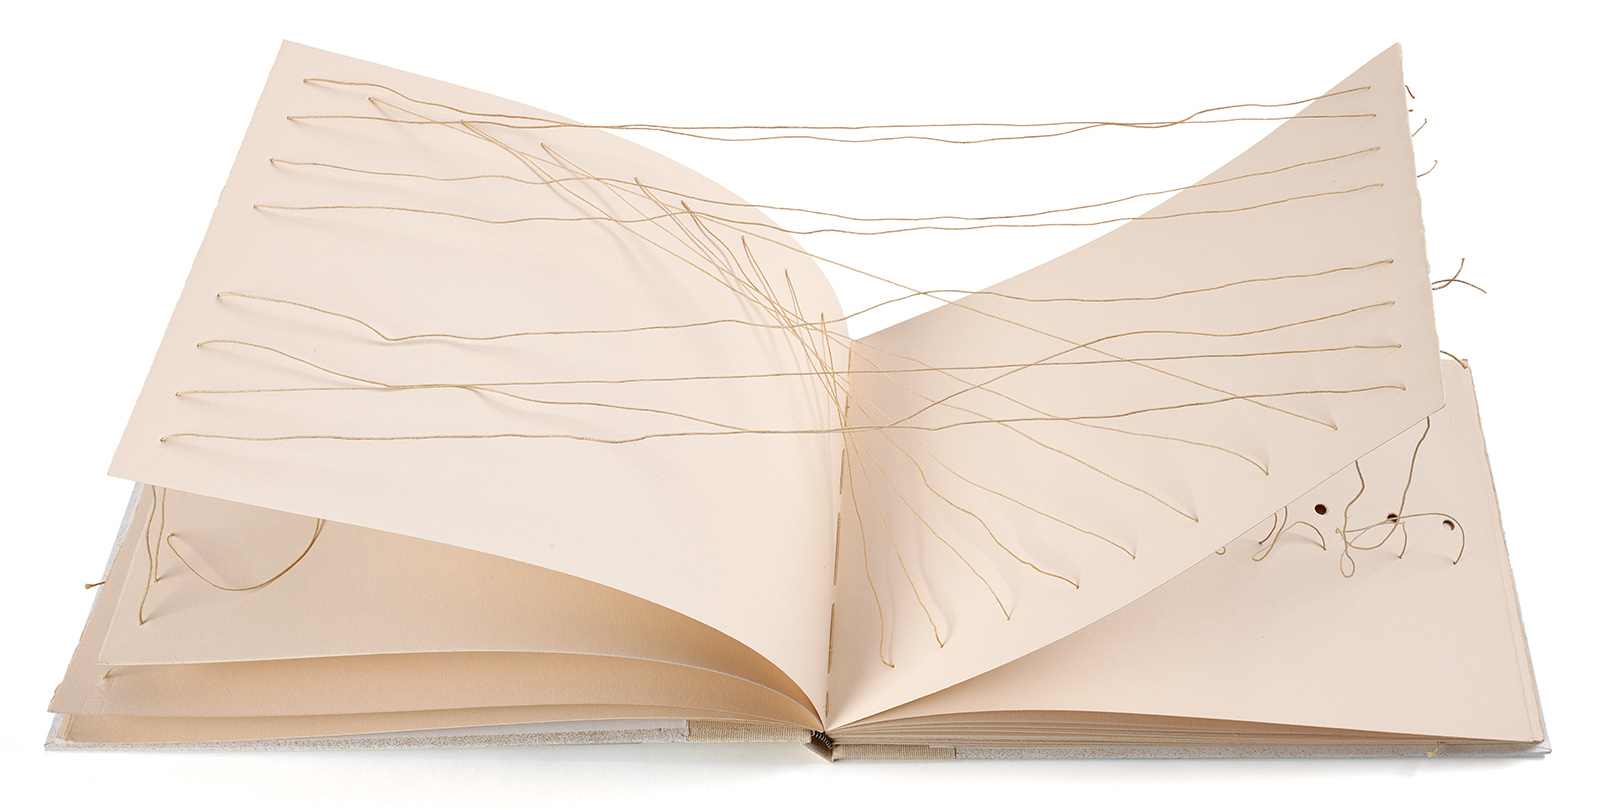 Kevin Smith's book titled Book 91 featuring white pages with red string that is strung through each page.